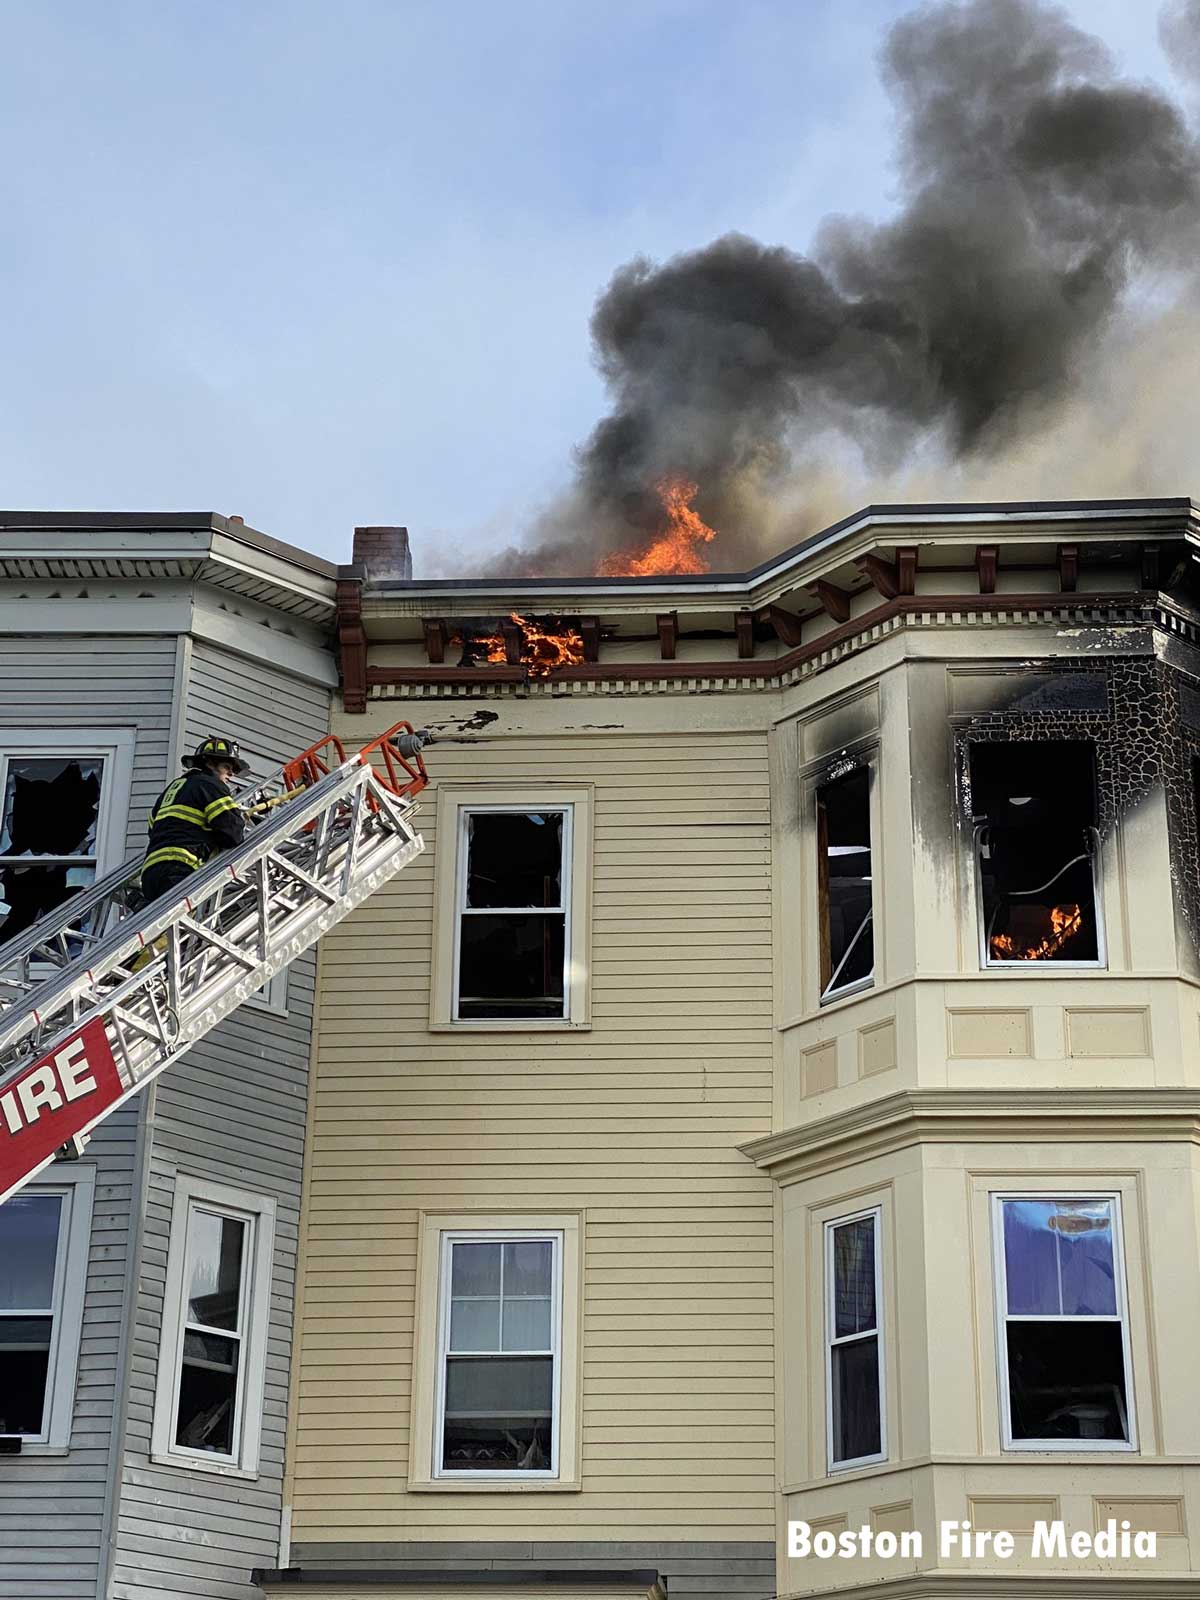 Firefighter in a an aerial continues to battle hot spots hours after the fire